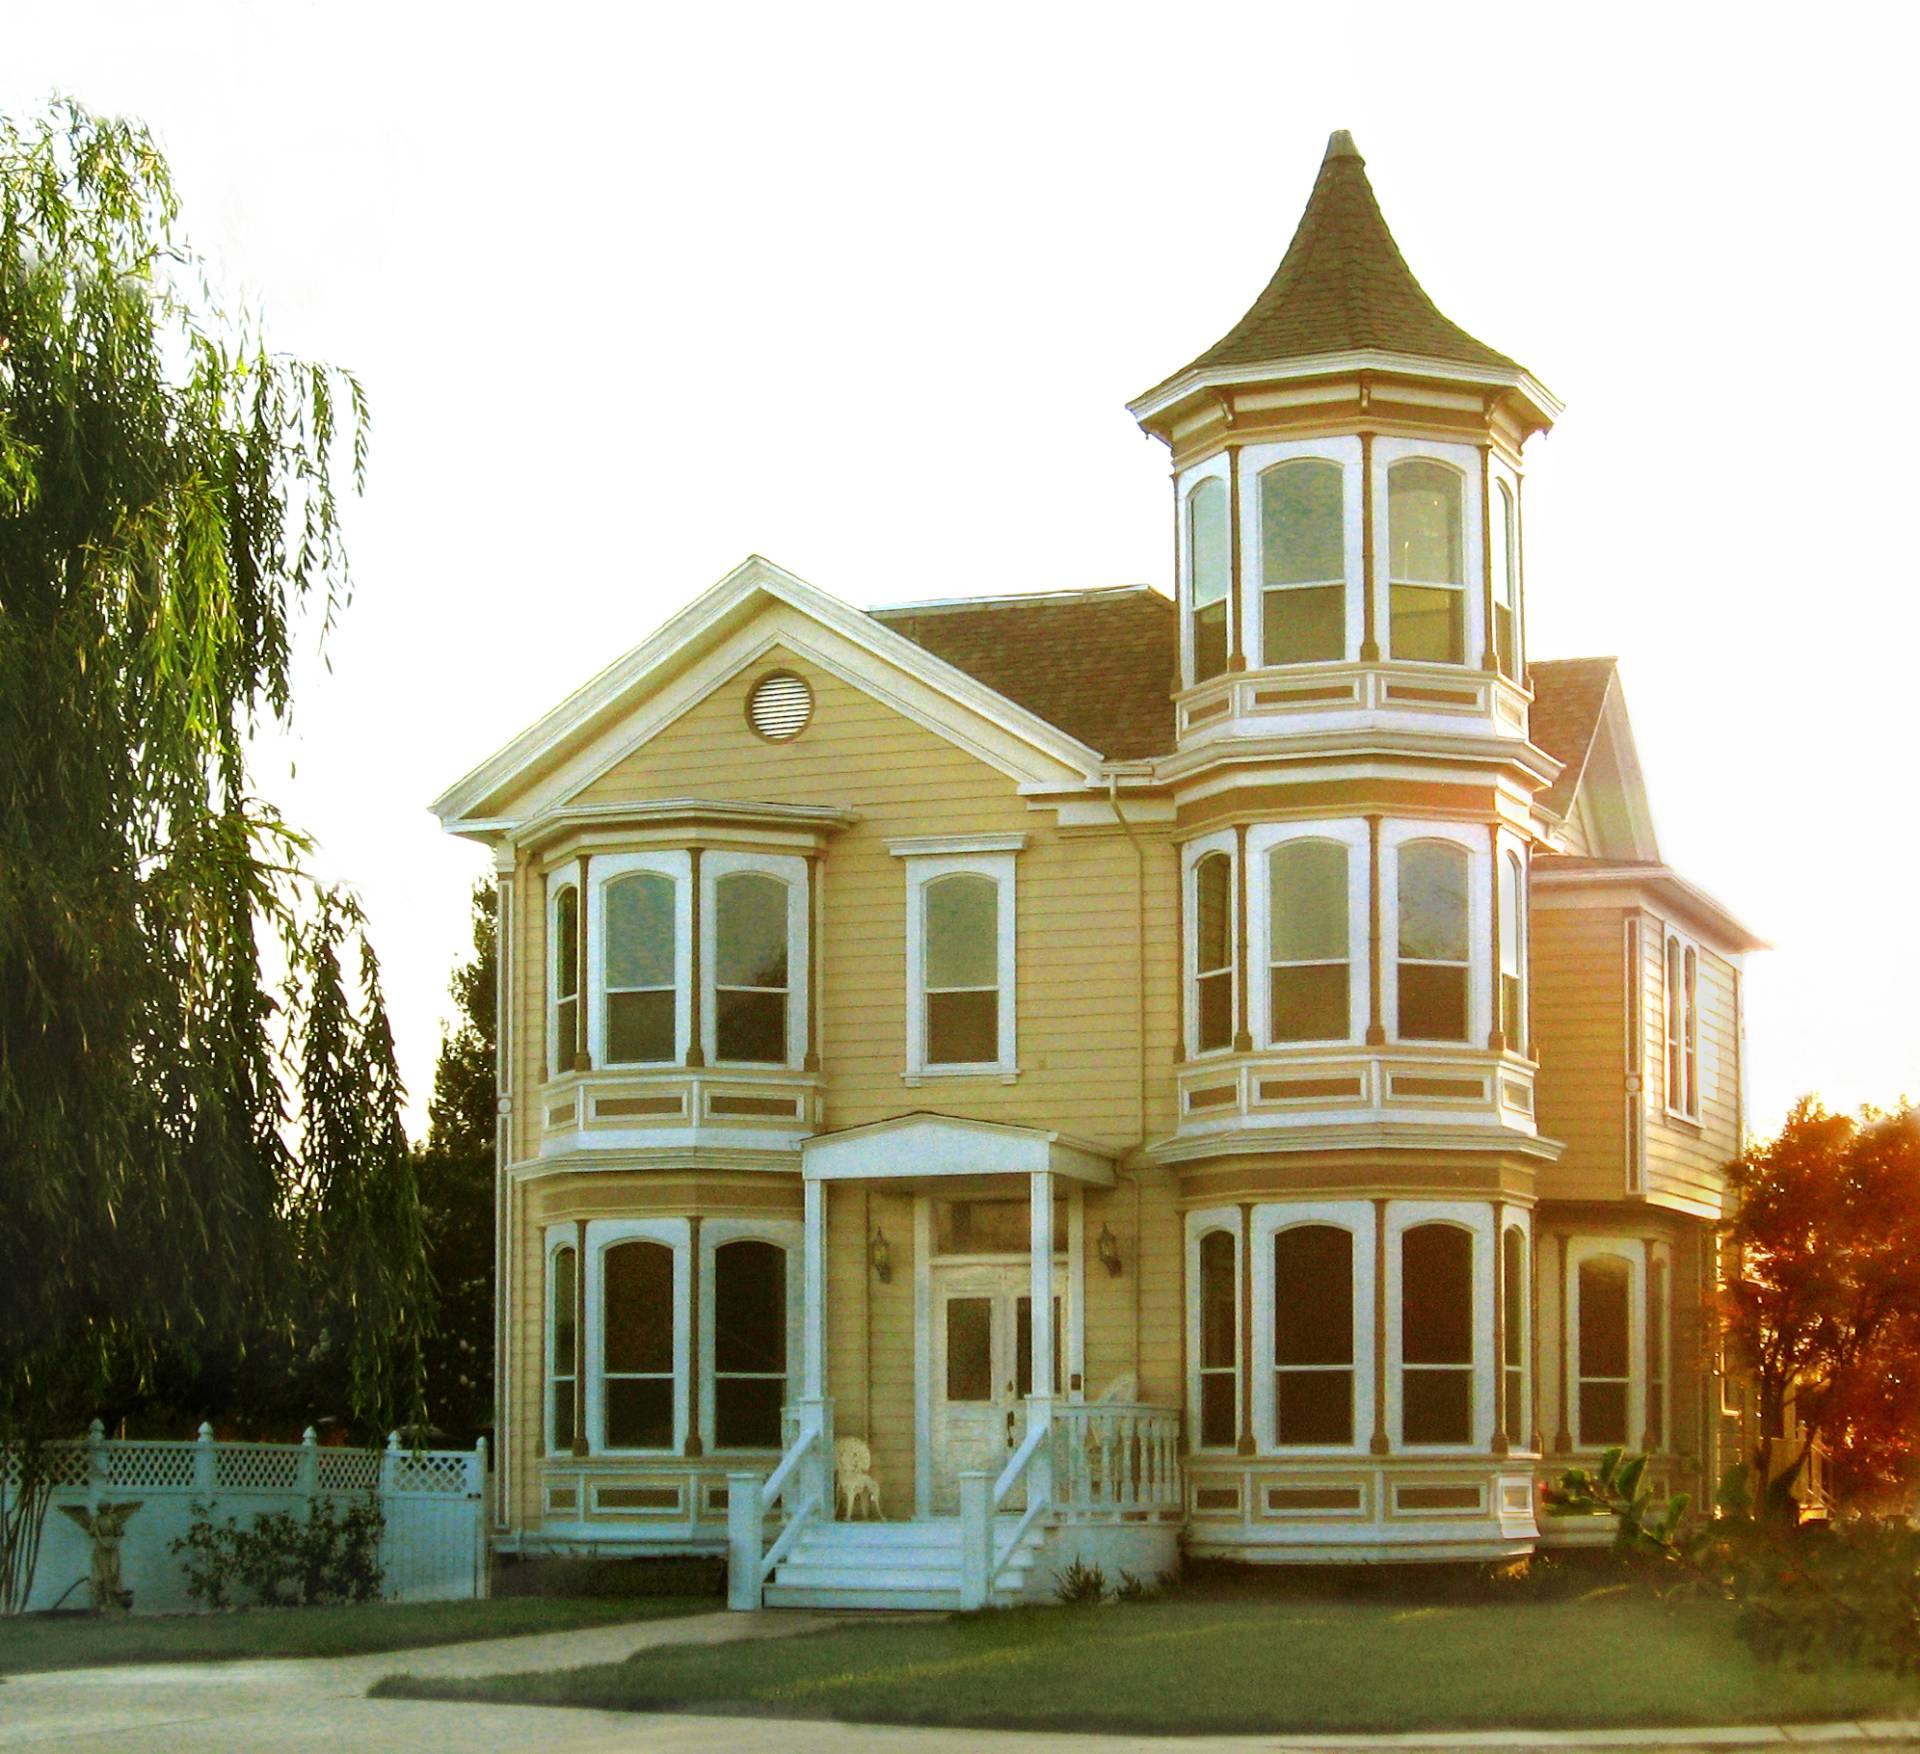 Built in 1877, the Walter B. Wood House is one of Modesto's few remaining examples of Victorian architecture. The building is listed in the National Registry of Historic Places.